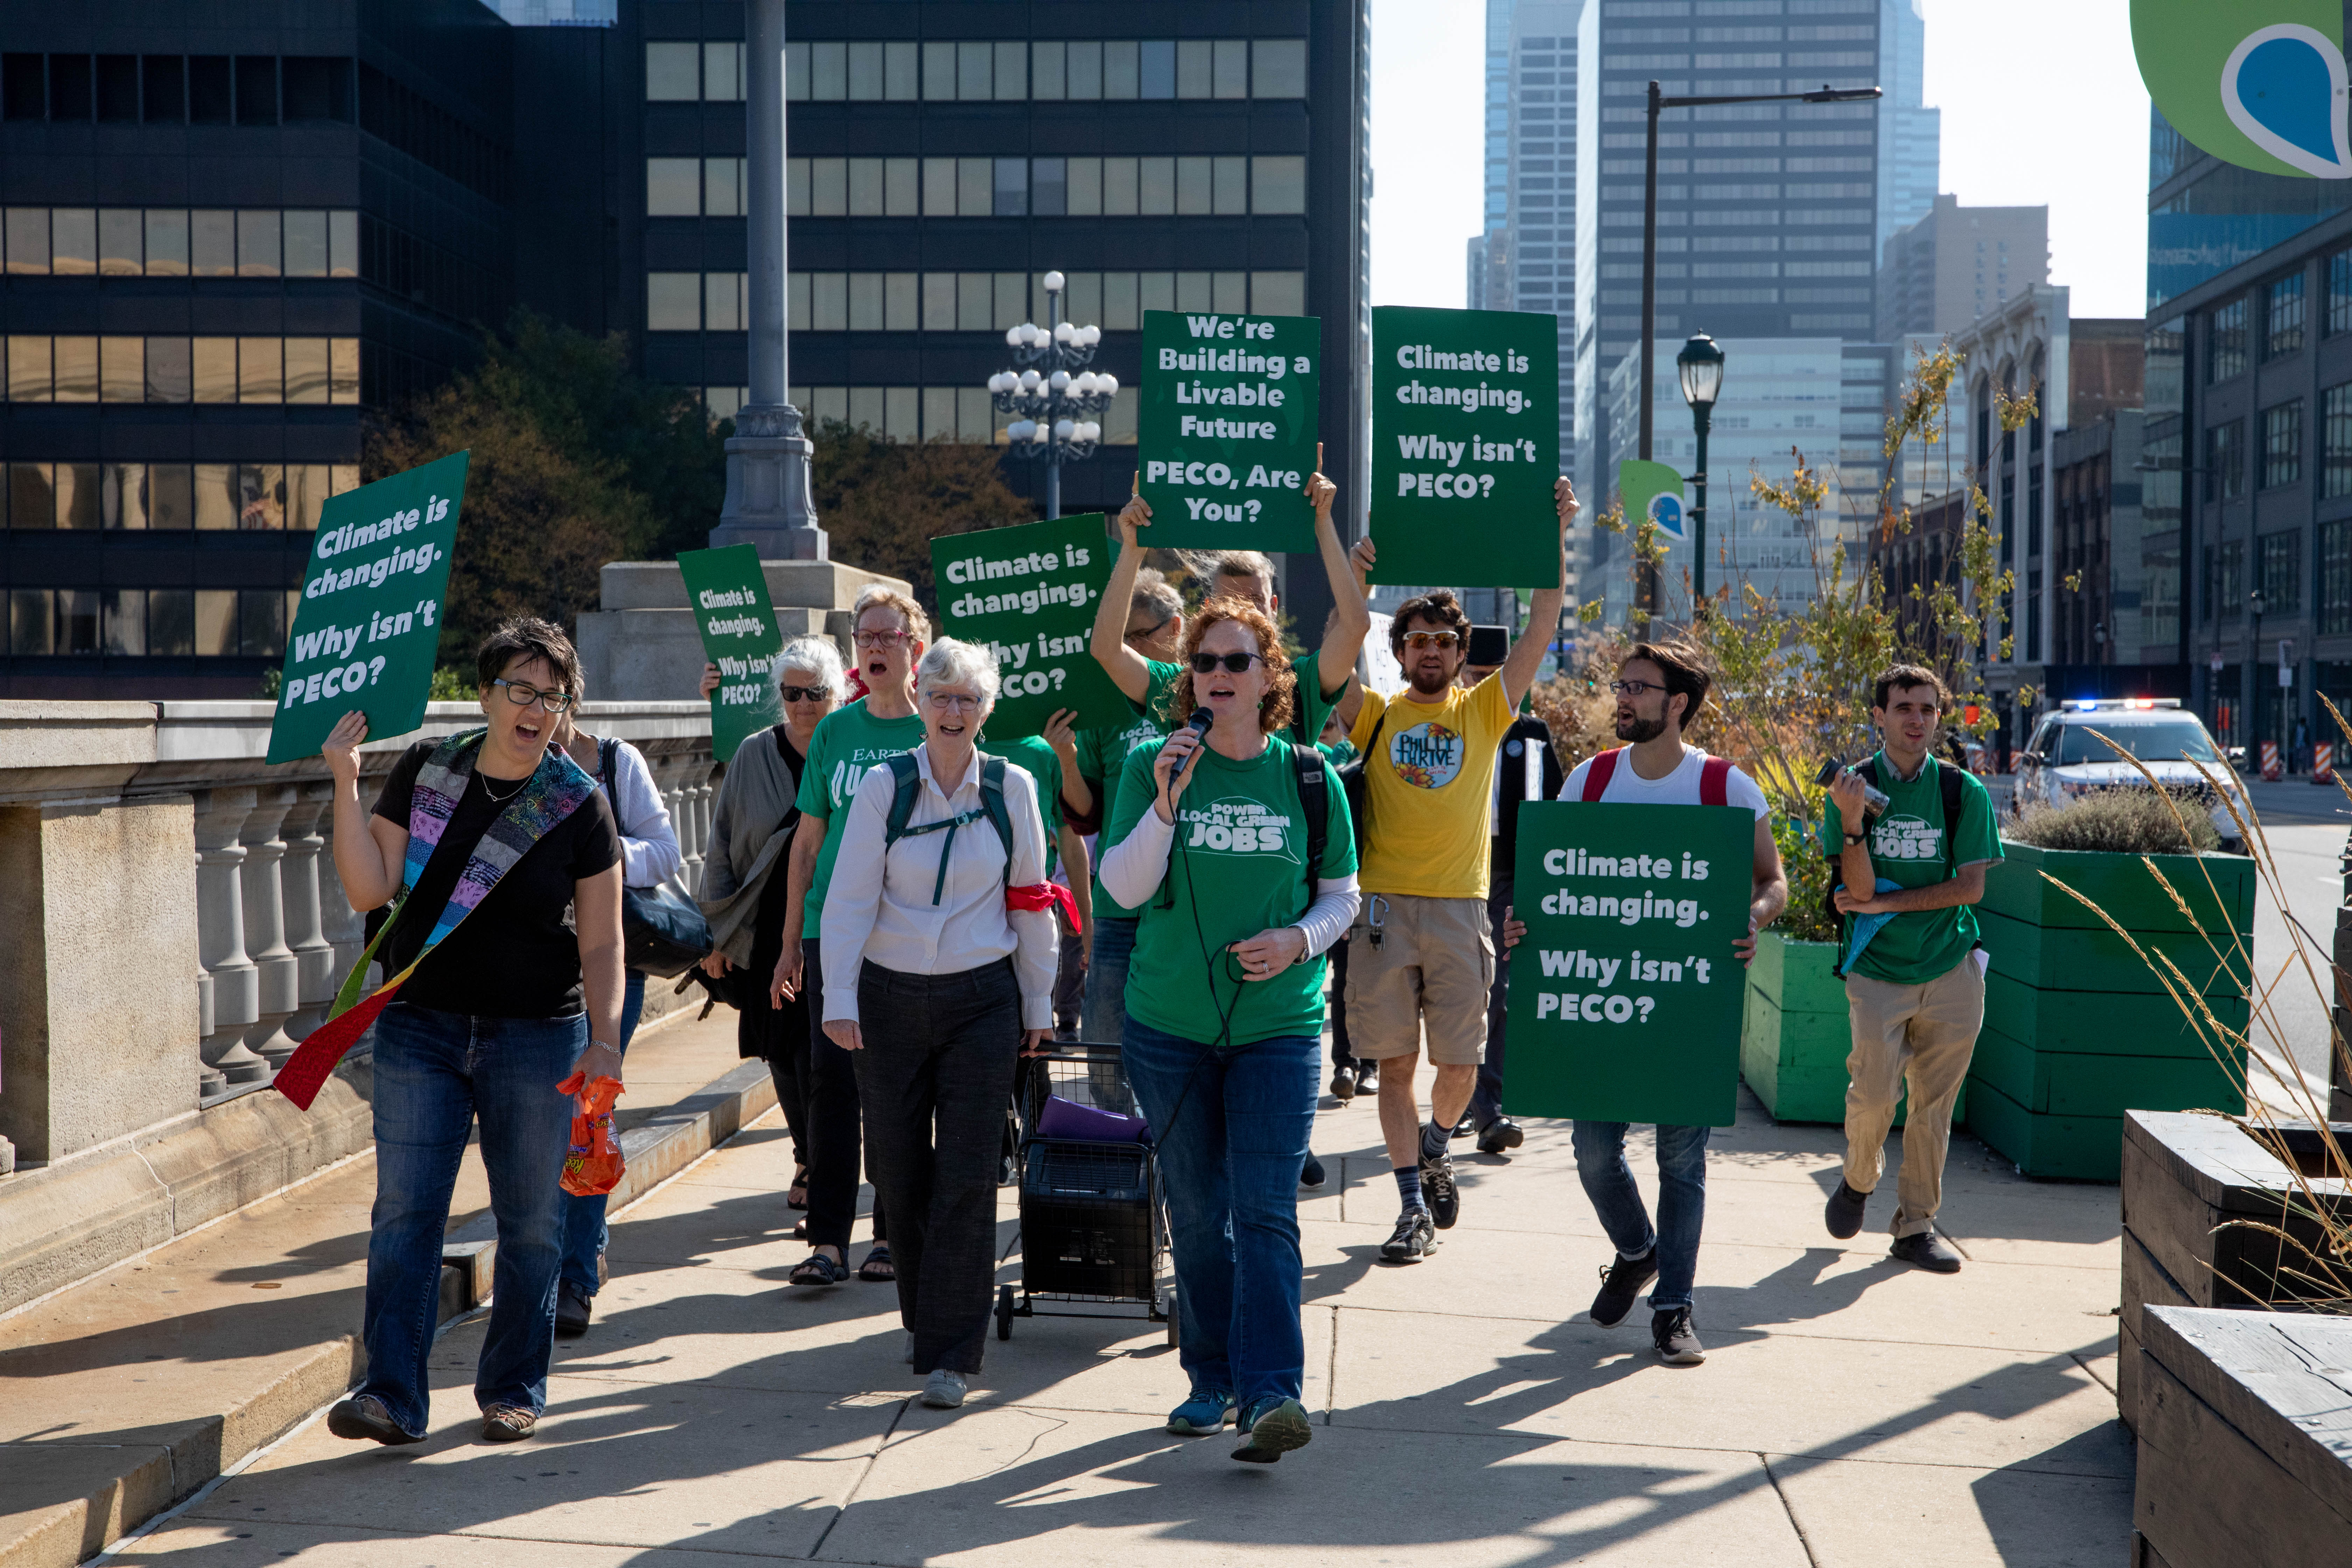 A group of activists holding signs and wearing green shirts walks down the sidewalk together